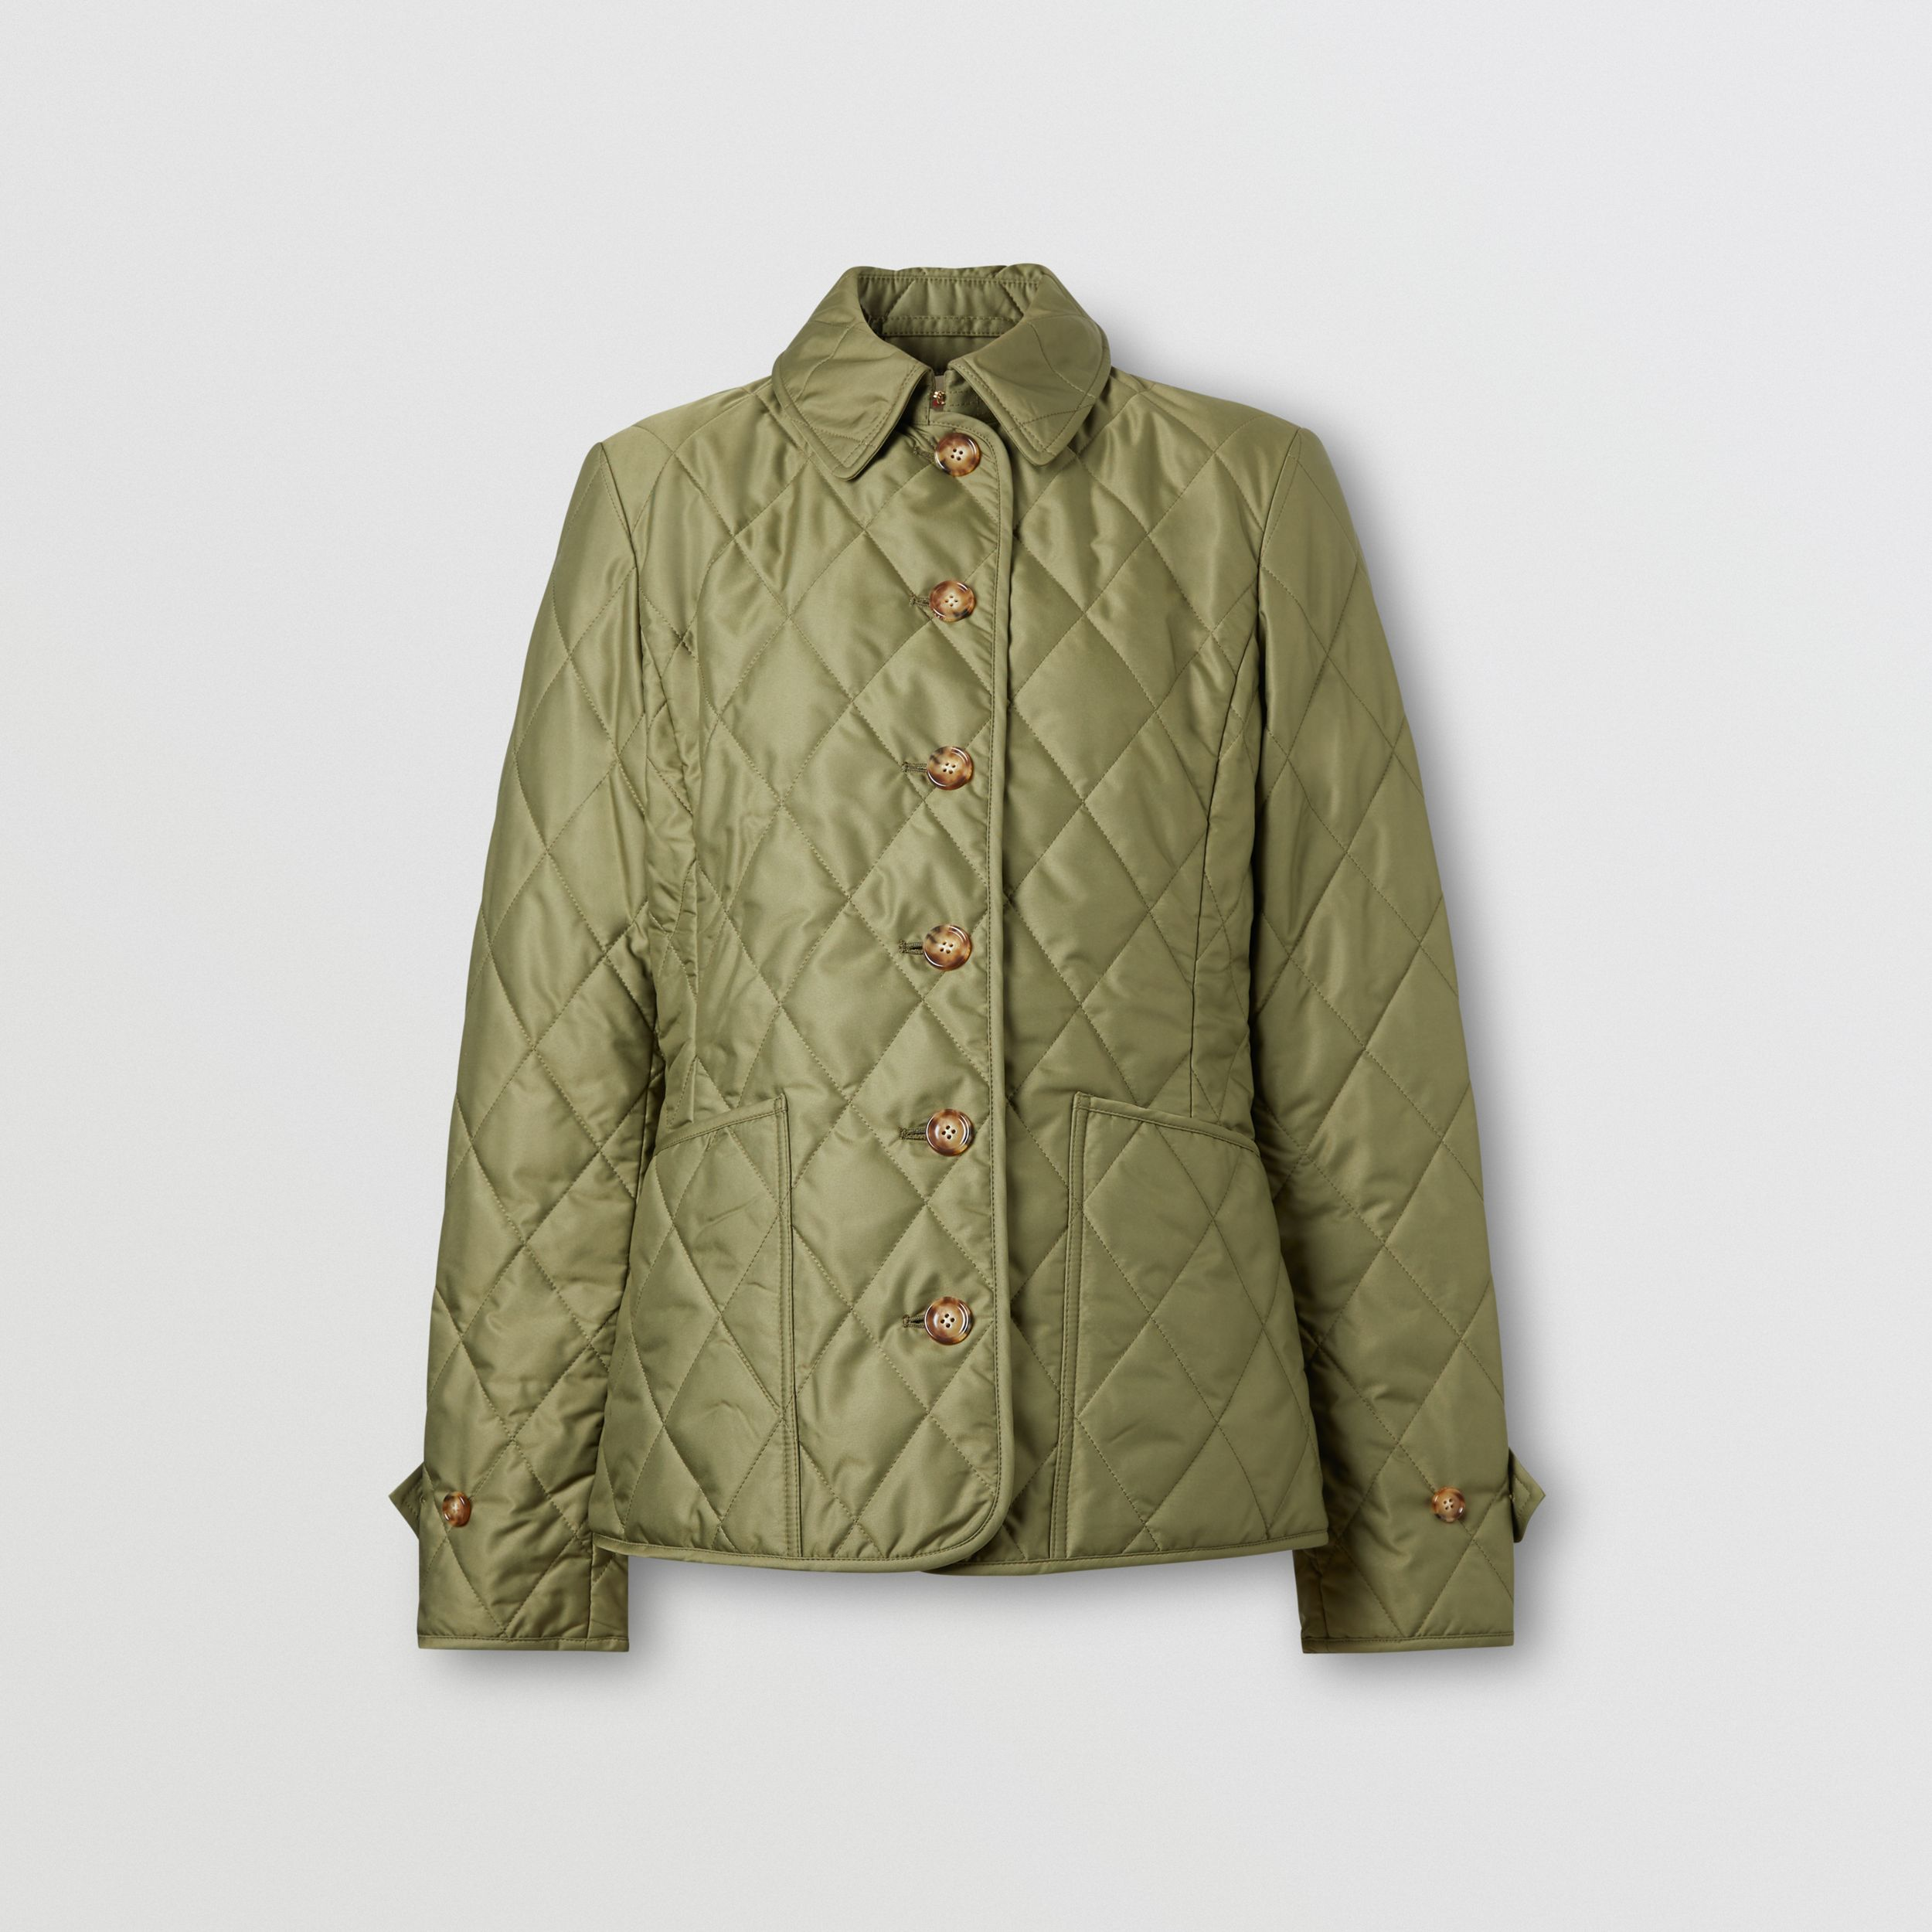 Diamond Quilted Thermoregulated Jacket in Olive Green - Women | Burberry - 4